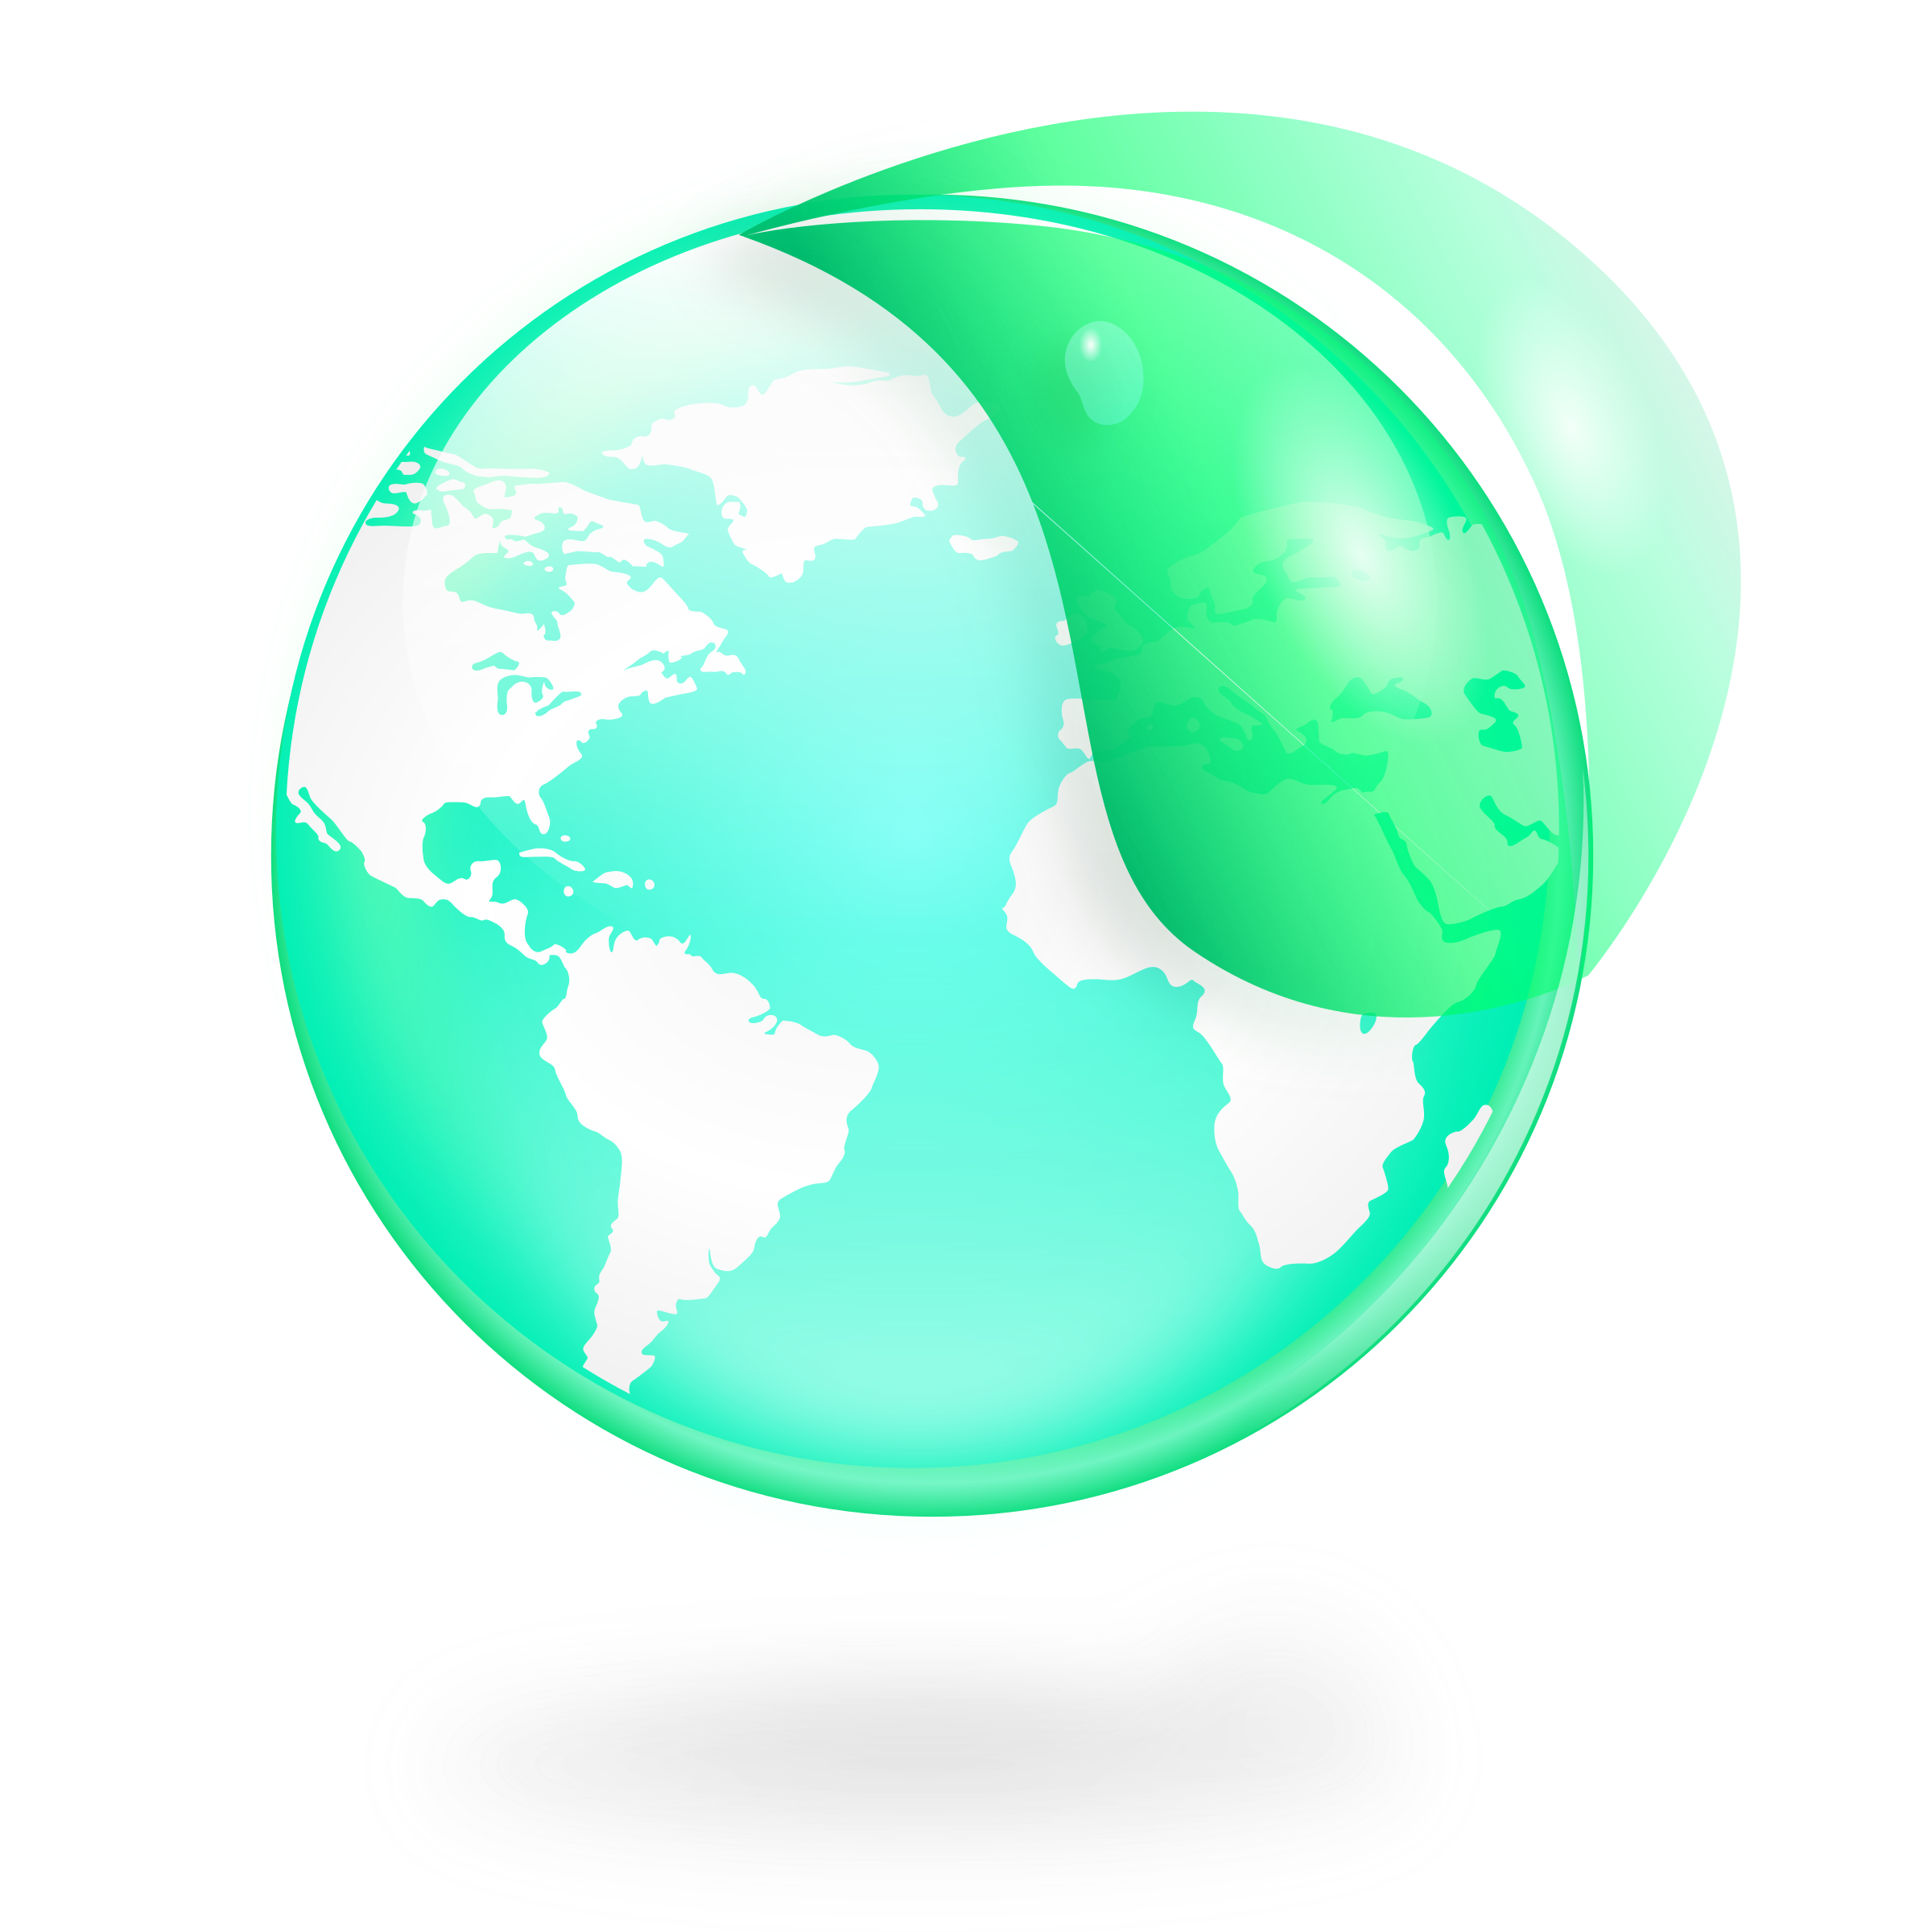 Apple globe world map clipart banner library download Clipart - Environmental / Eco Globe & Leaf Icon banner library download